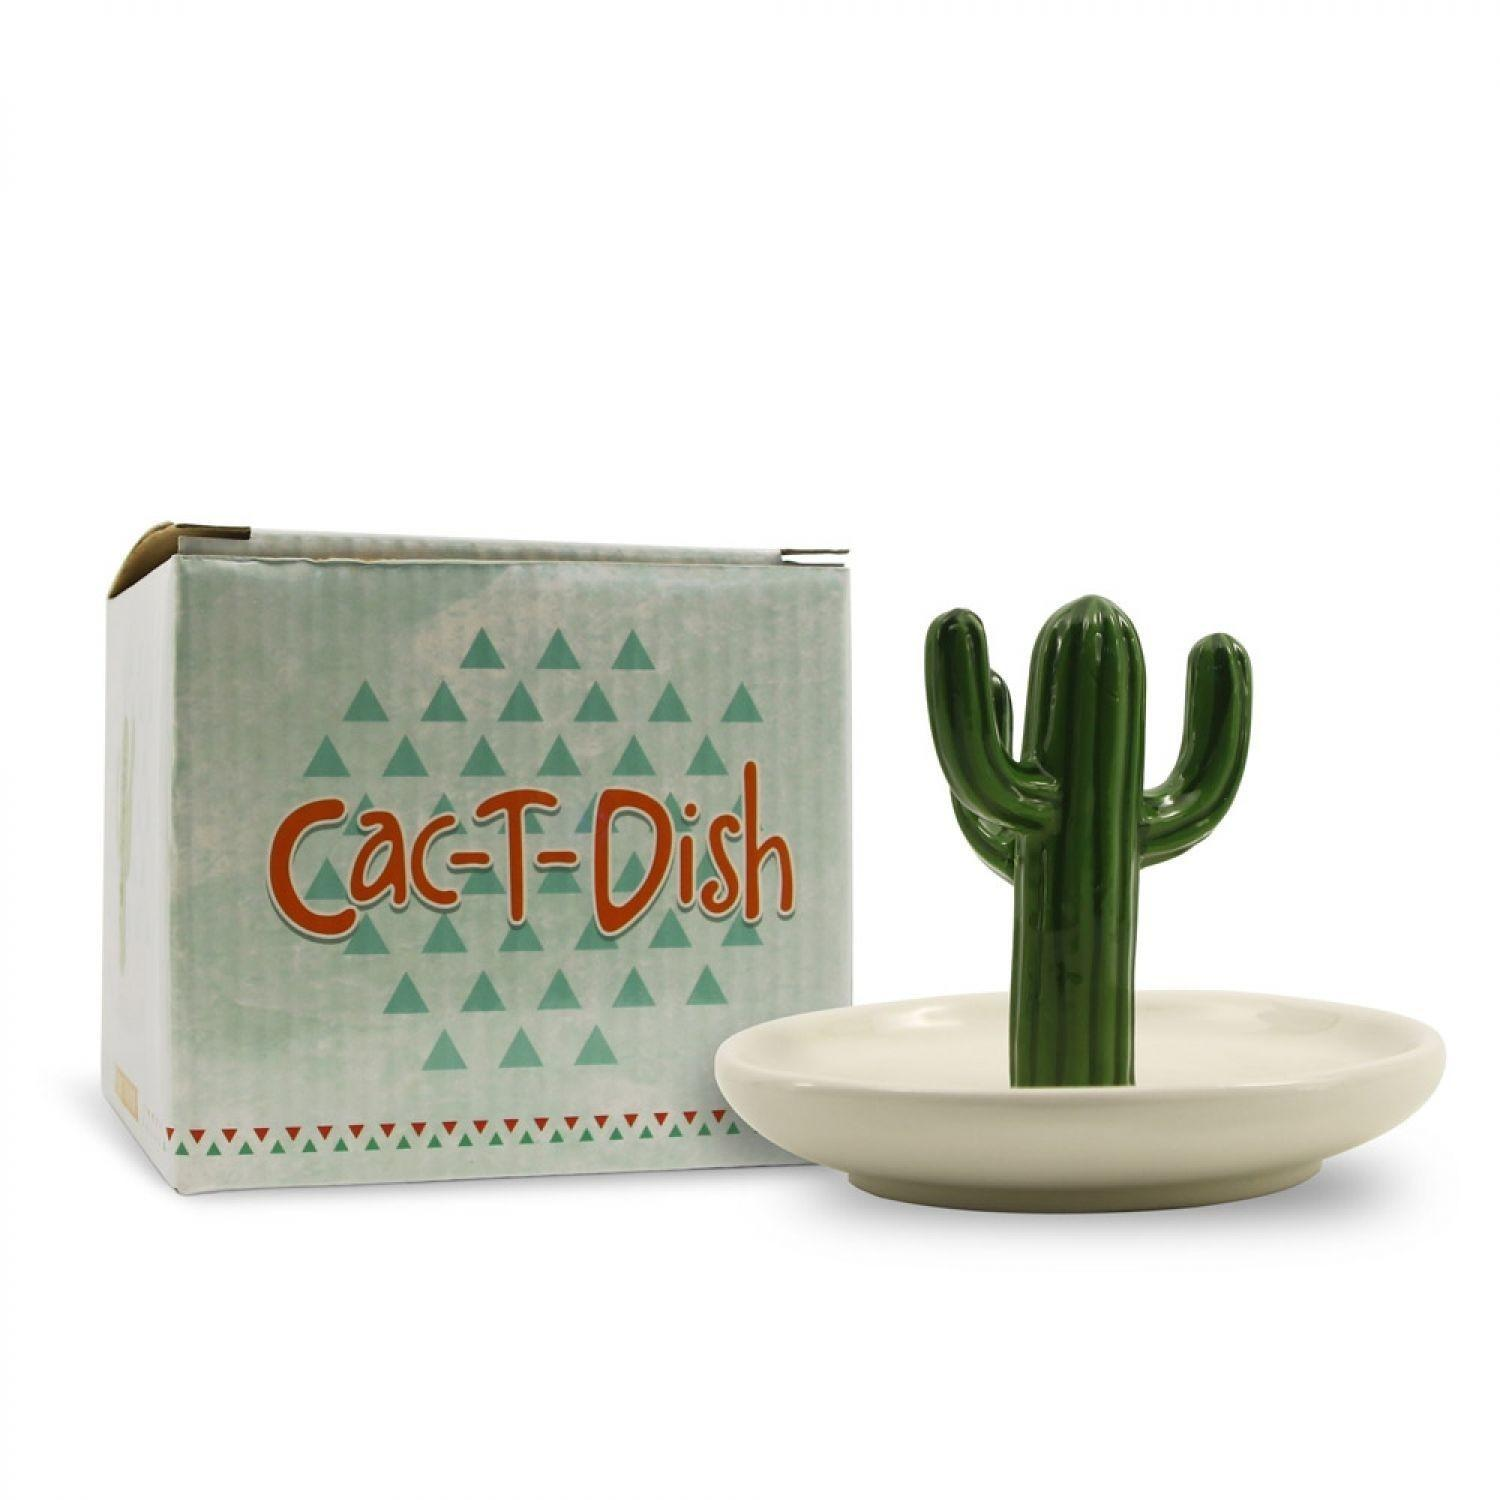 Ring Holder Ceramic Cactus Jewelry Dish Art Similar